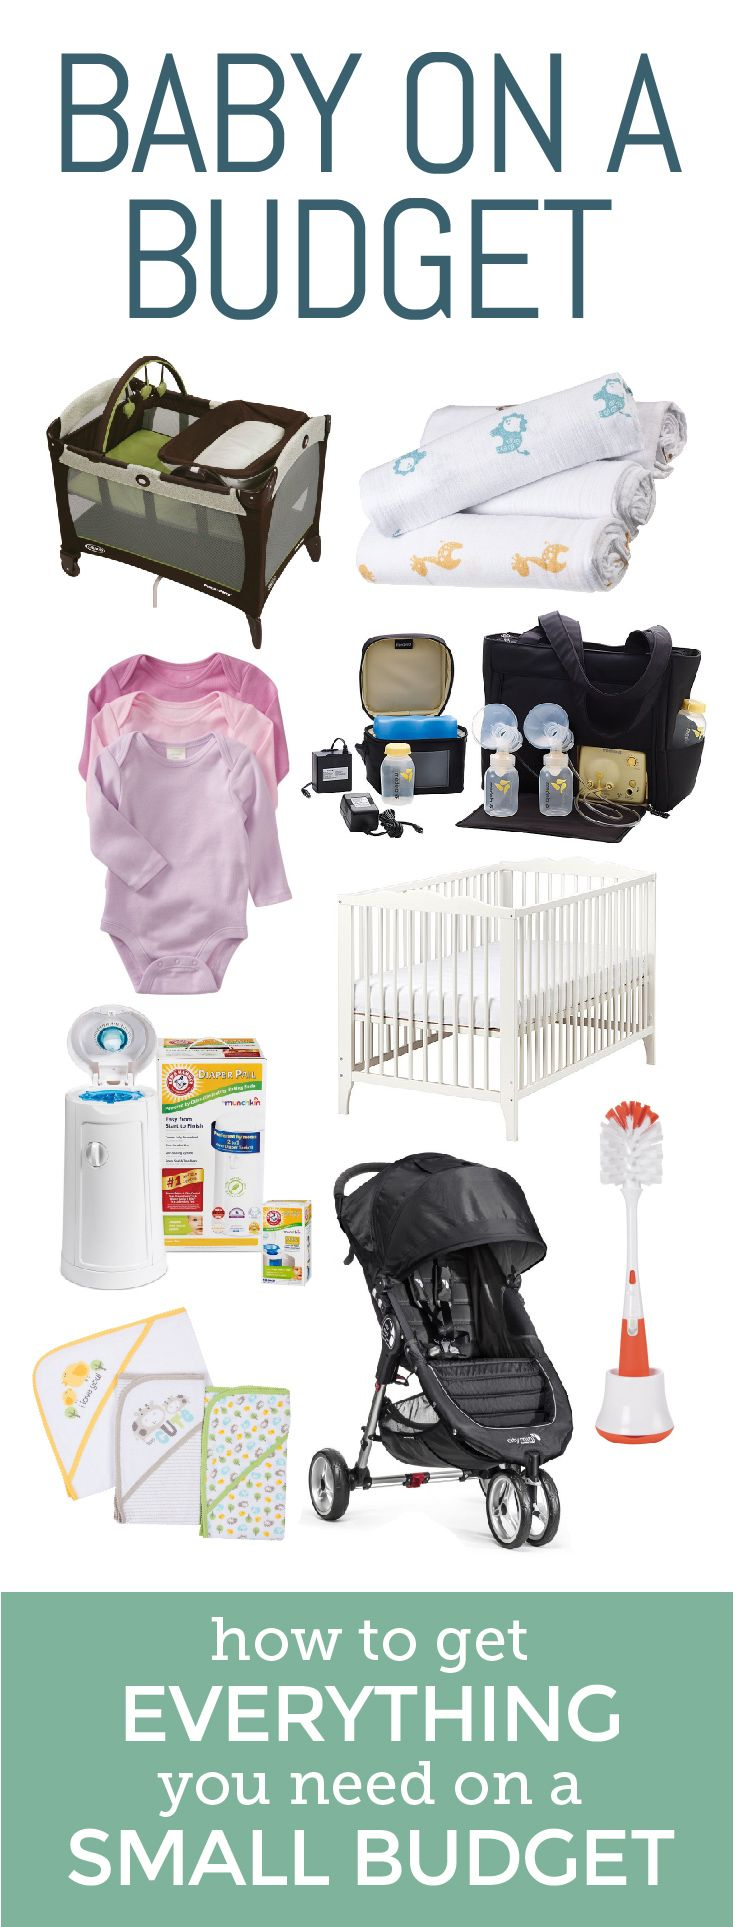 You don't need to break the bank to bring home a new baby! This is the perfect registry to get everything you need without breaking the bank.